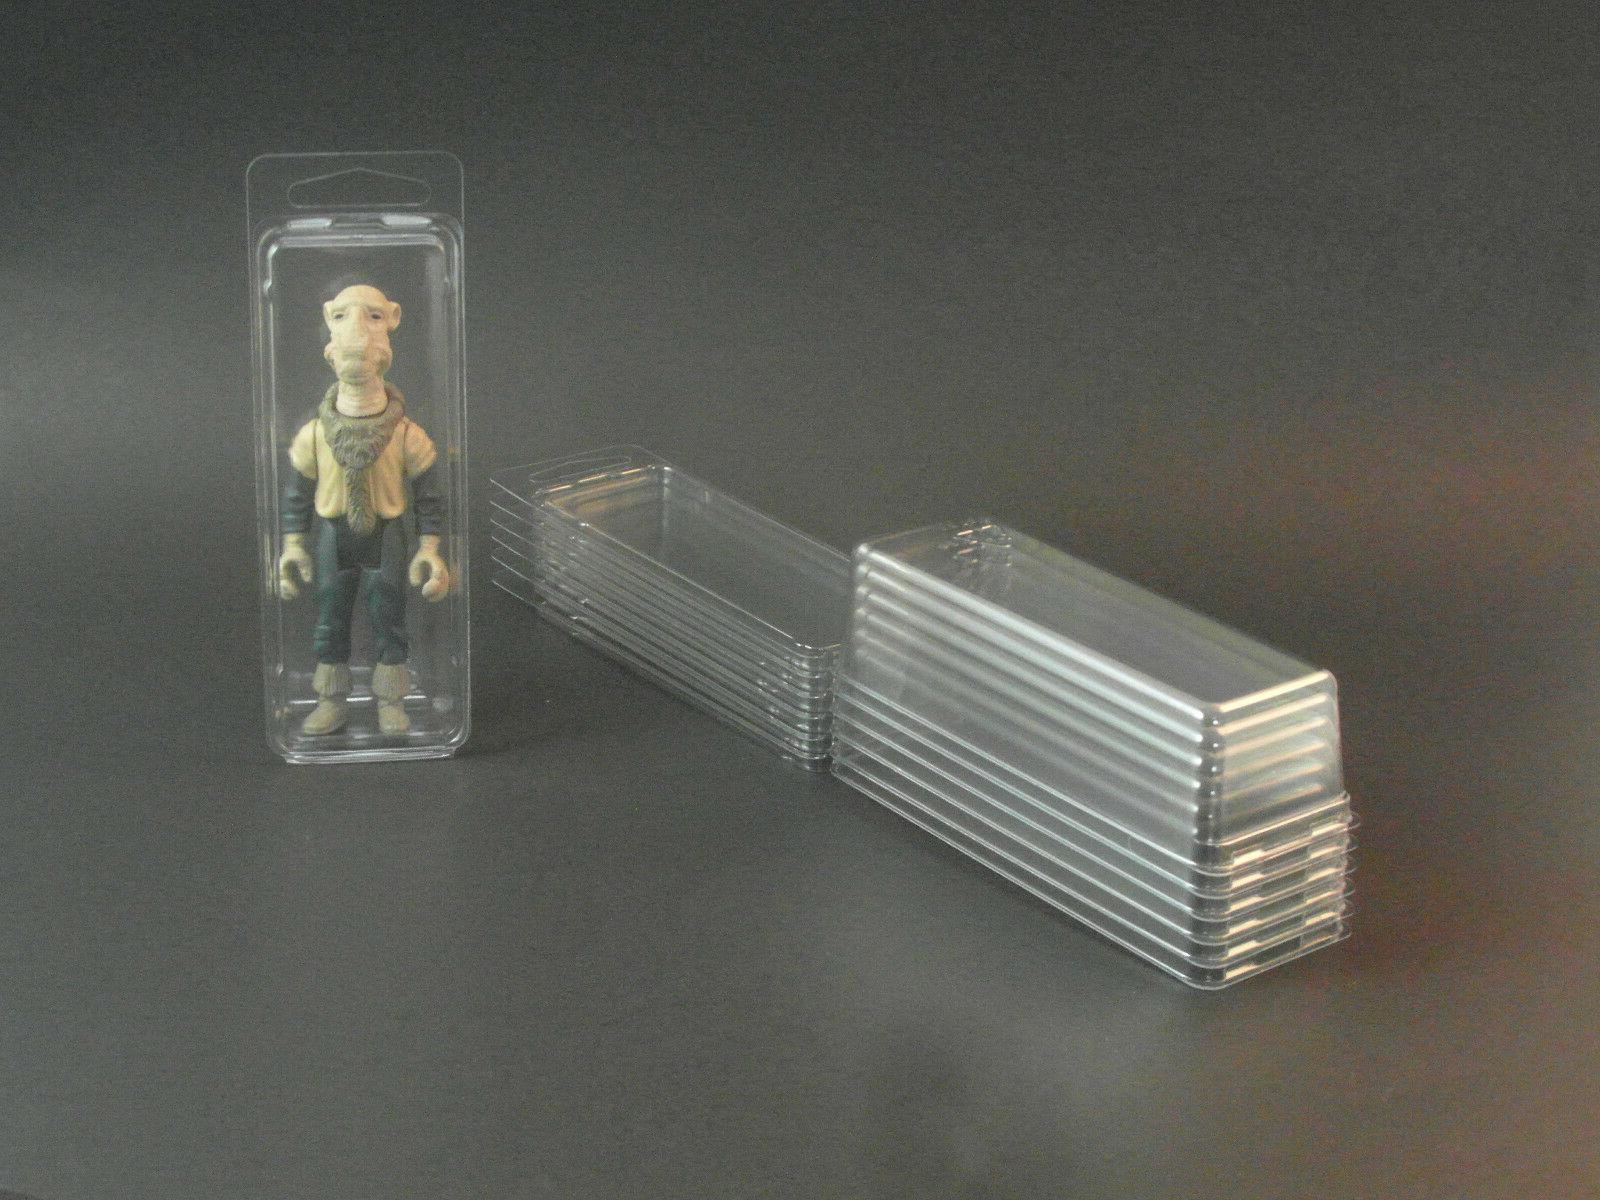 star wars blister case 25 action figure